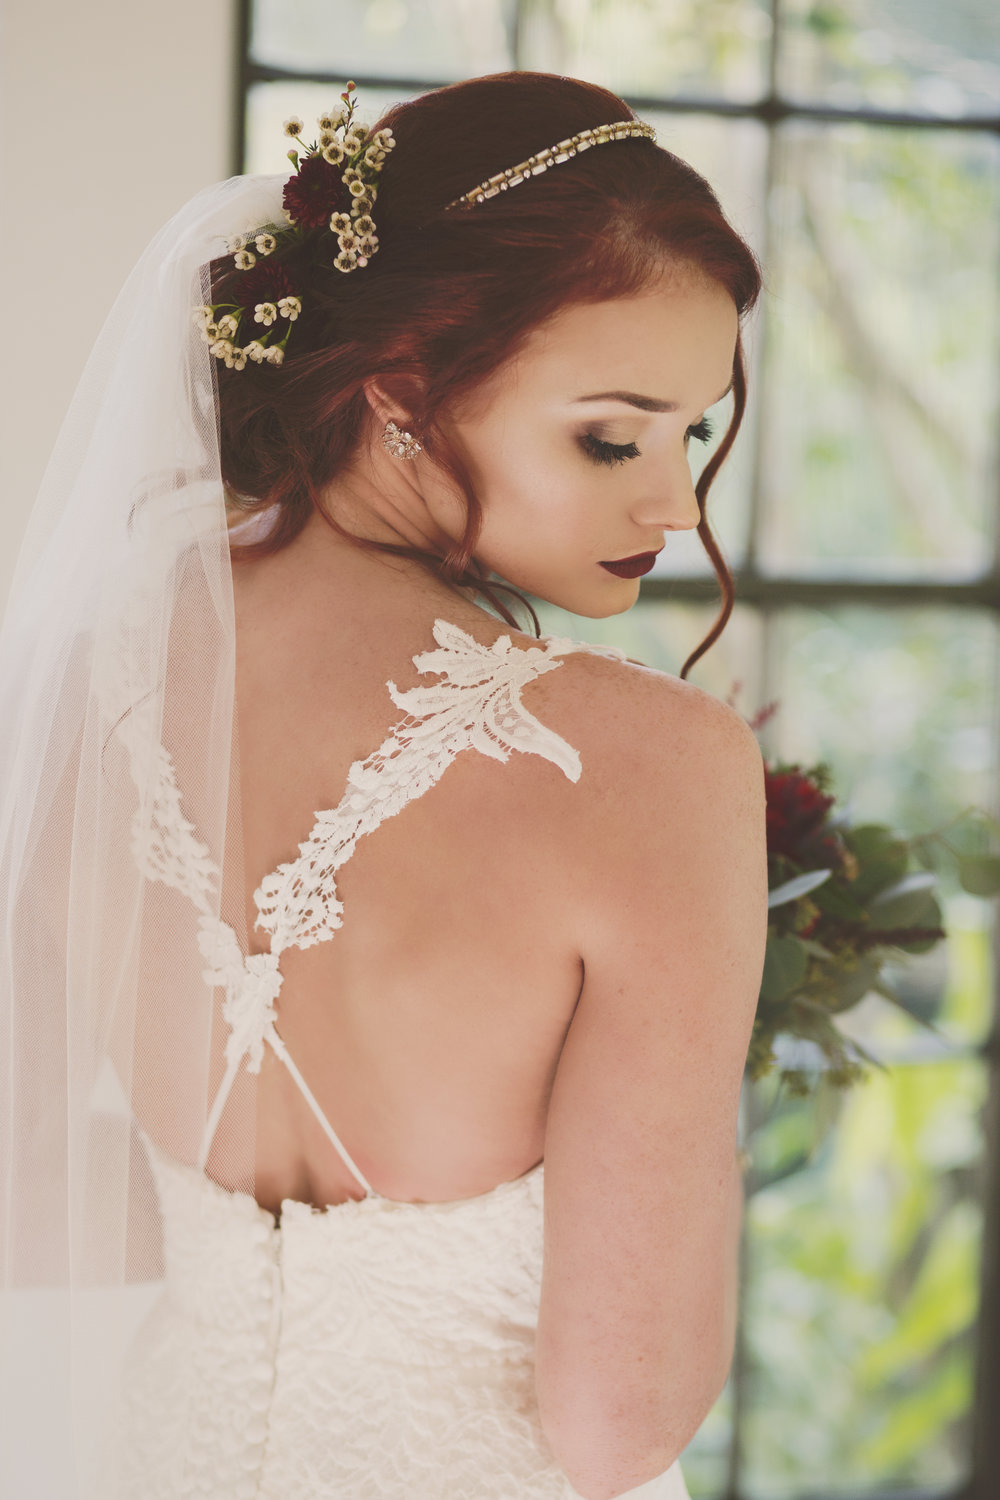 ivory-and-beau-bridal-boutique-courtney-hyatt-photography-hart-to-hart-photography-ti-adora-wedding-gown-ti-adora-7651-3.jpg